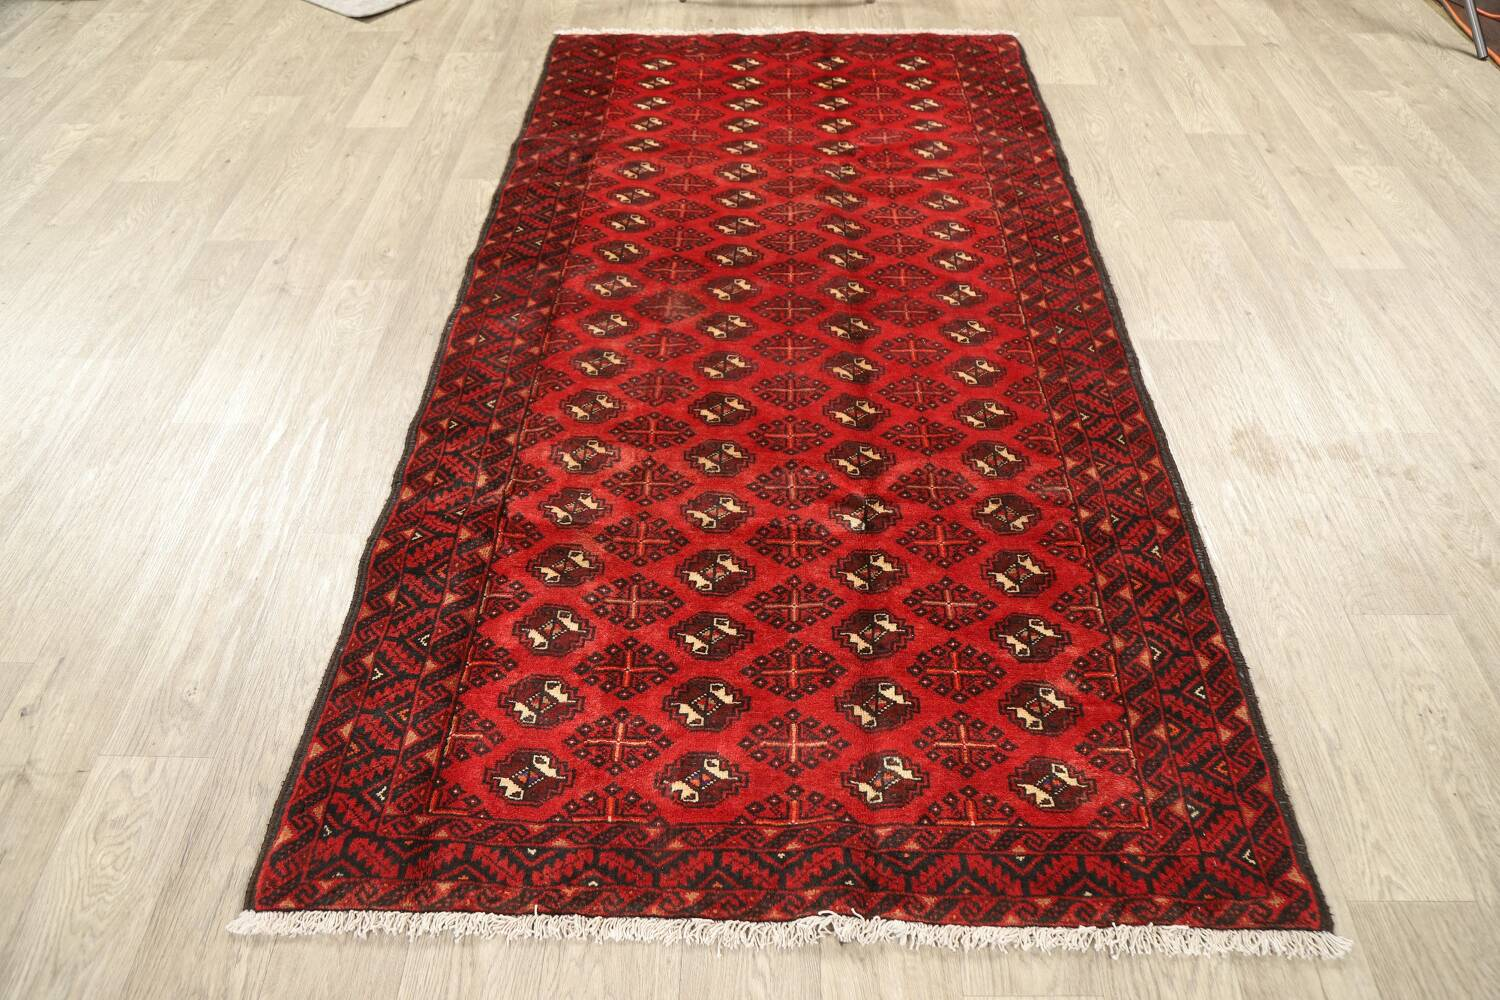 All-Over Red Geometric Balouch Persian Area Rug 4x7 image 12